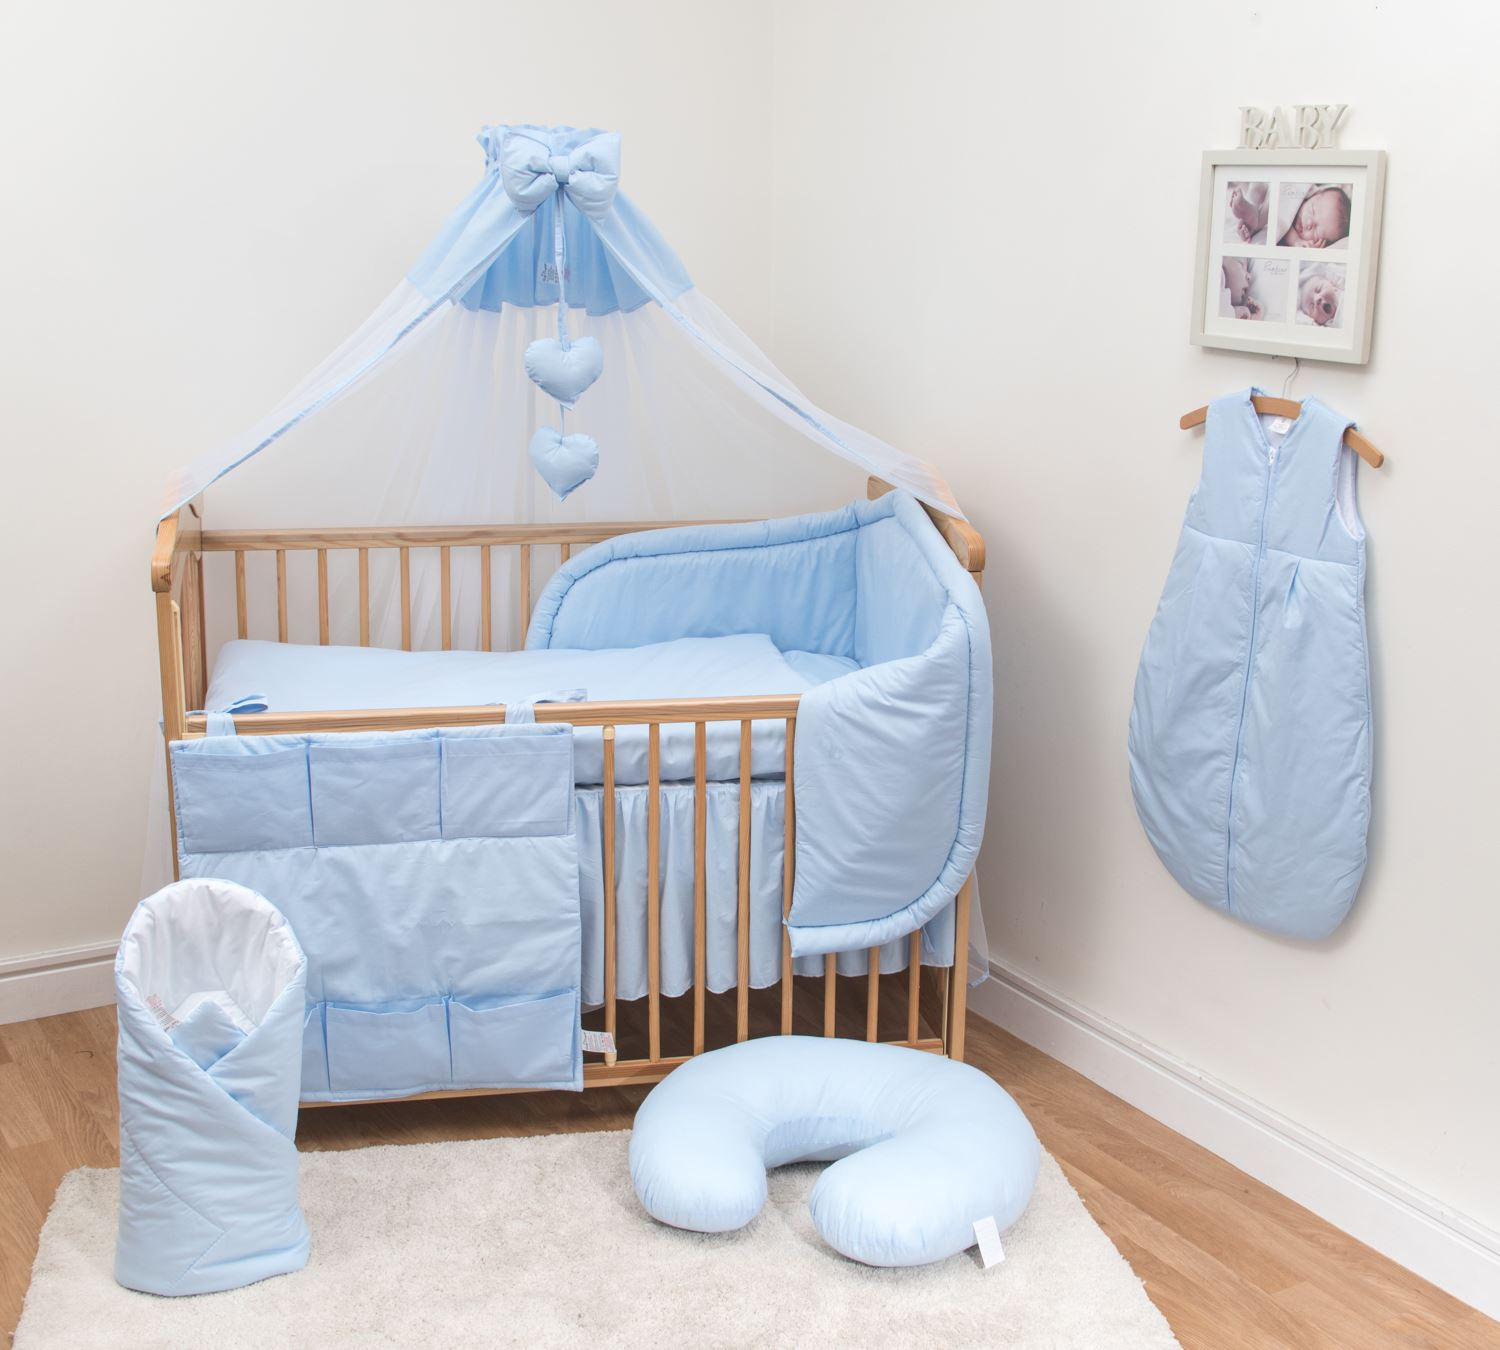 10-piece cot bedding set with padded bumper suitable for 140x70 cm cot CAWNVJW